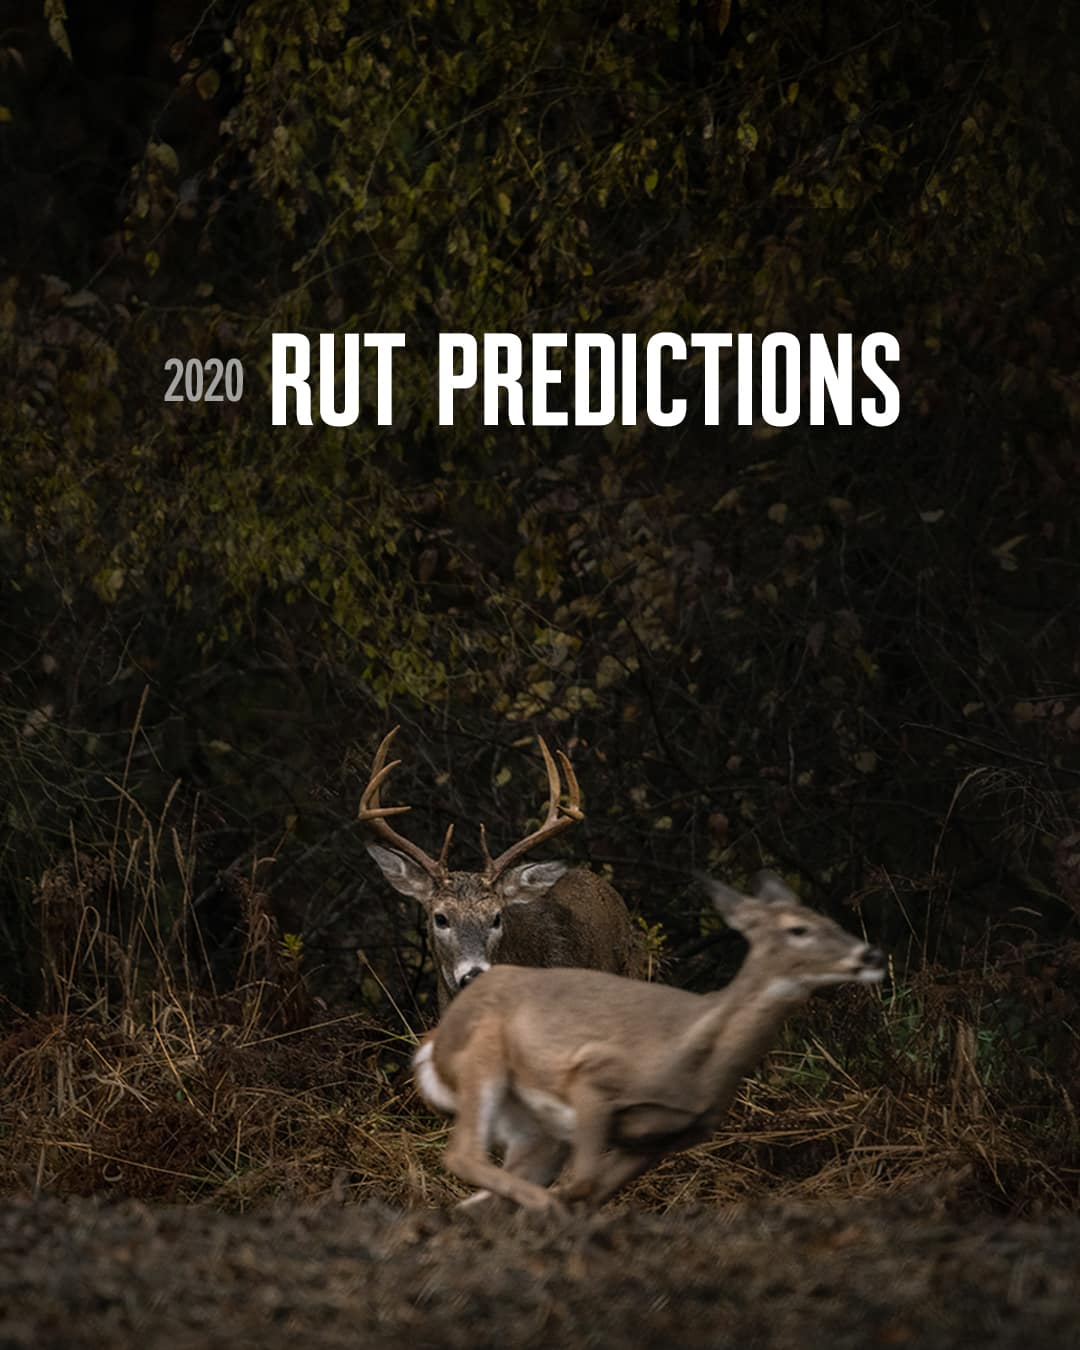 2020 Rut Predictions | Onx Maps with regard to Prediction Of Deer Rut 2021 In Ontario